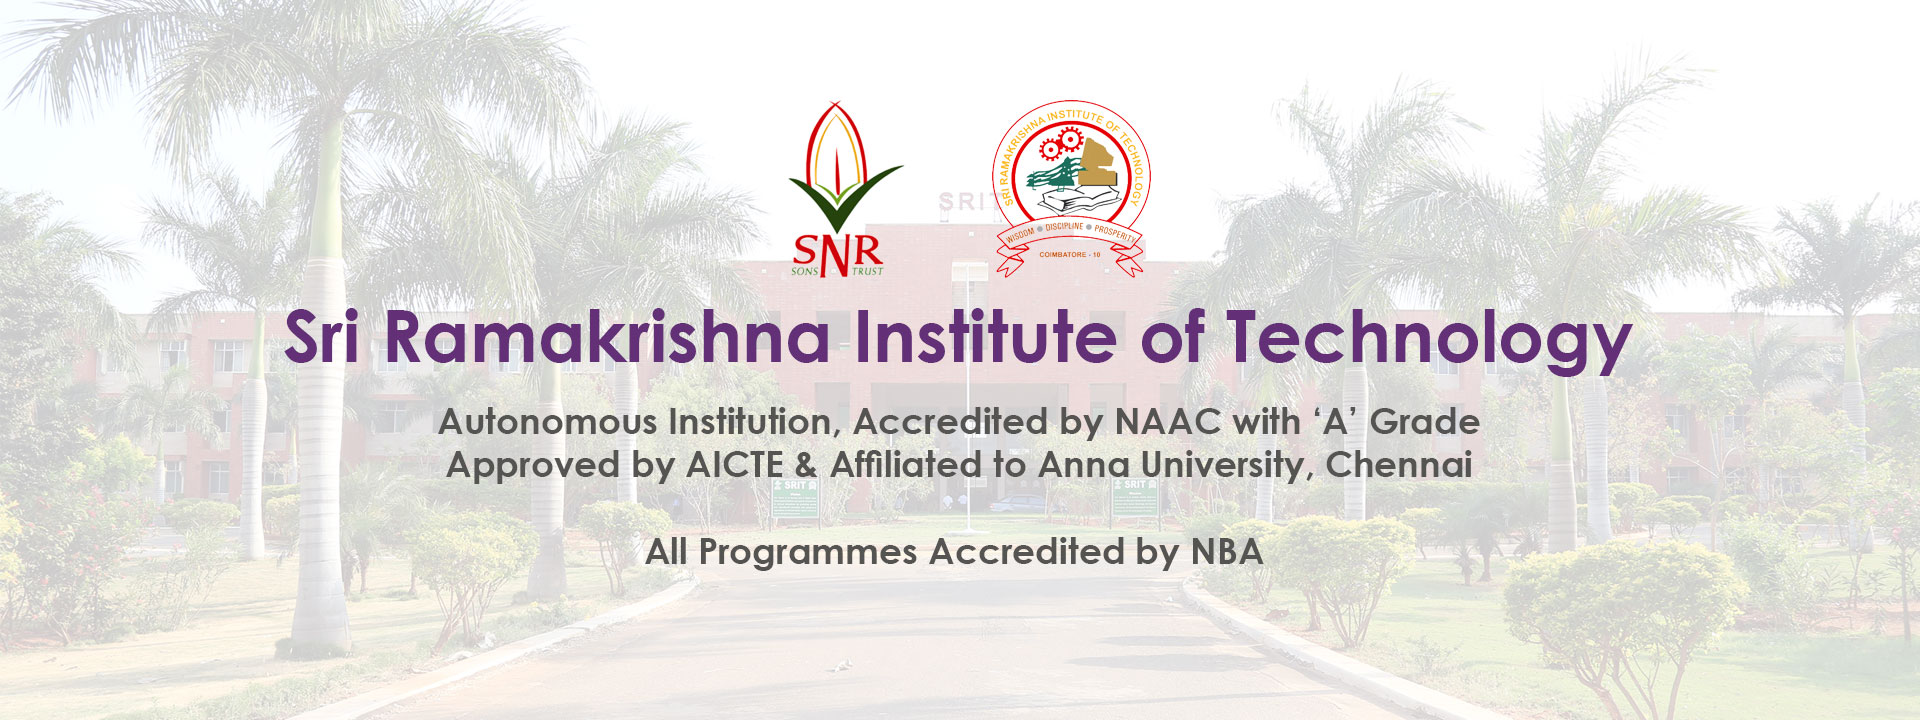 Sri Ramakrishna Institute of Technology, Autonomous Institution